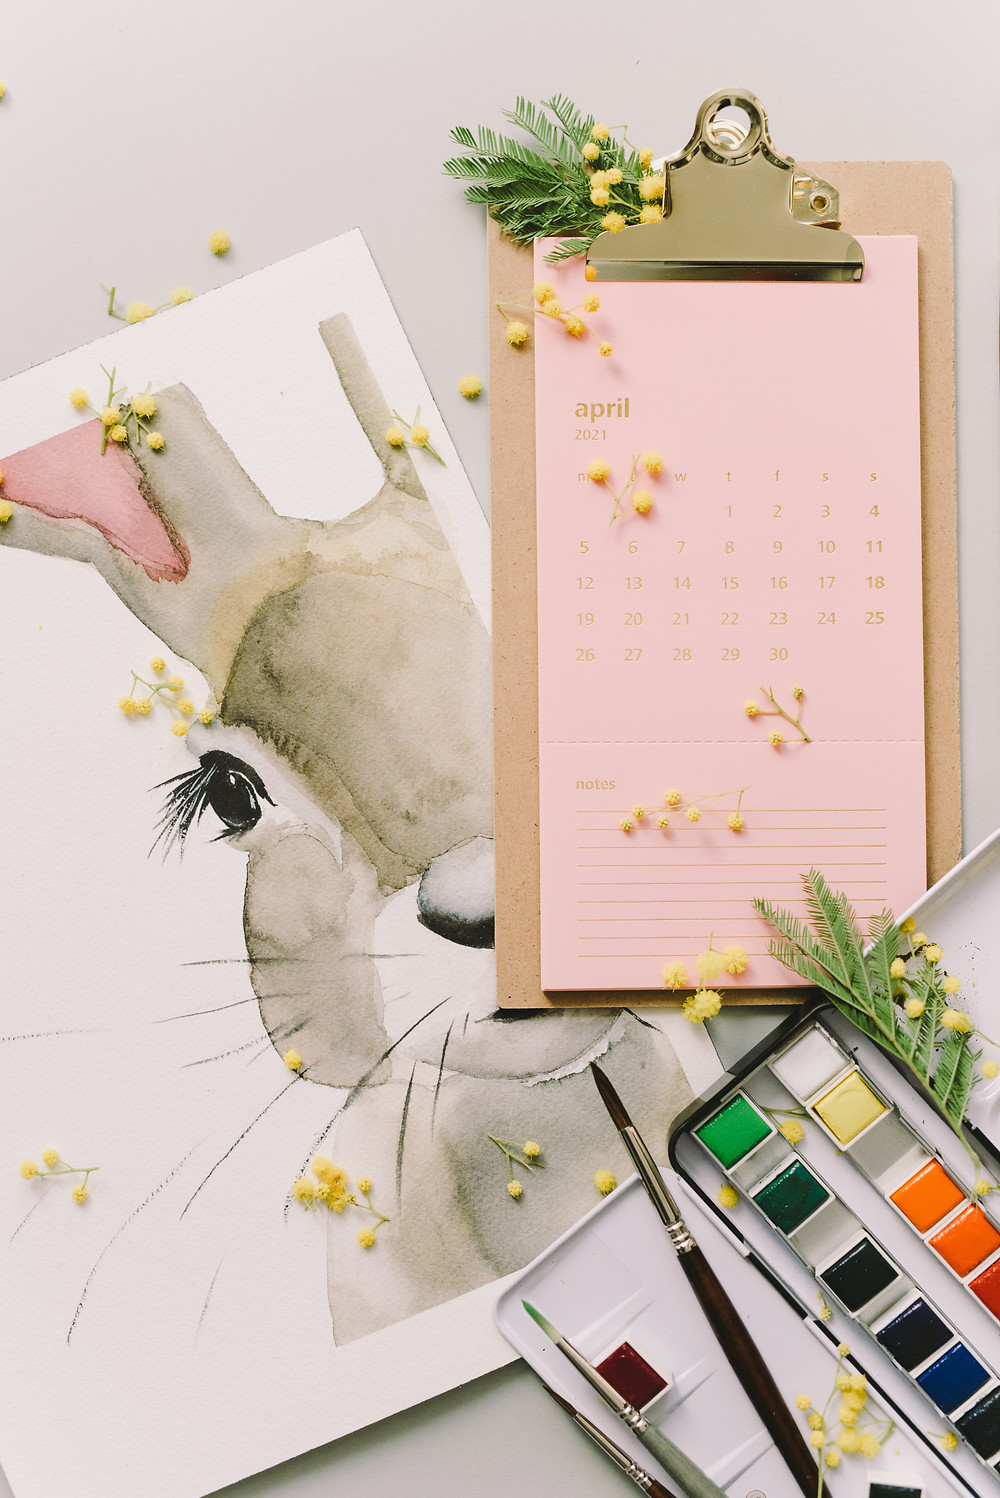 Bunny paining and april calendar on a clip board